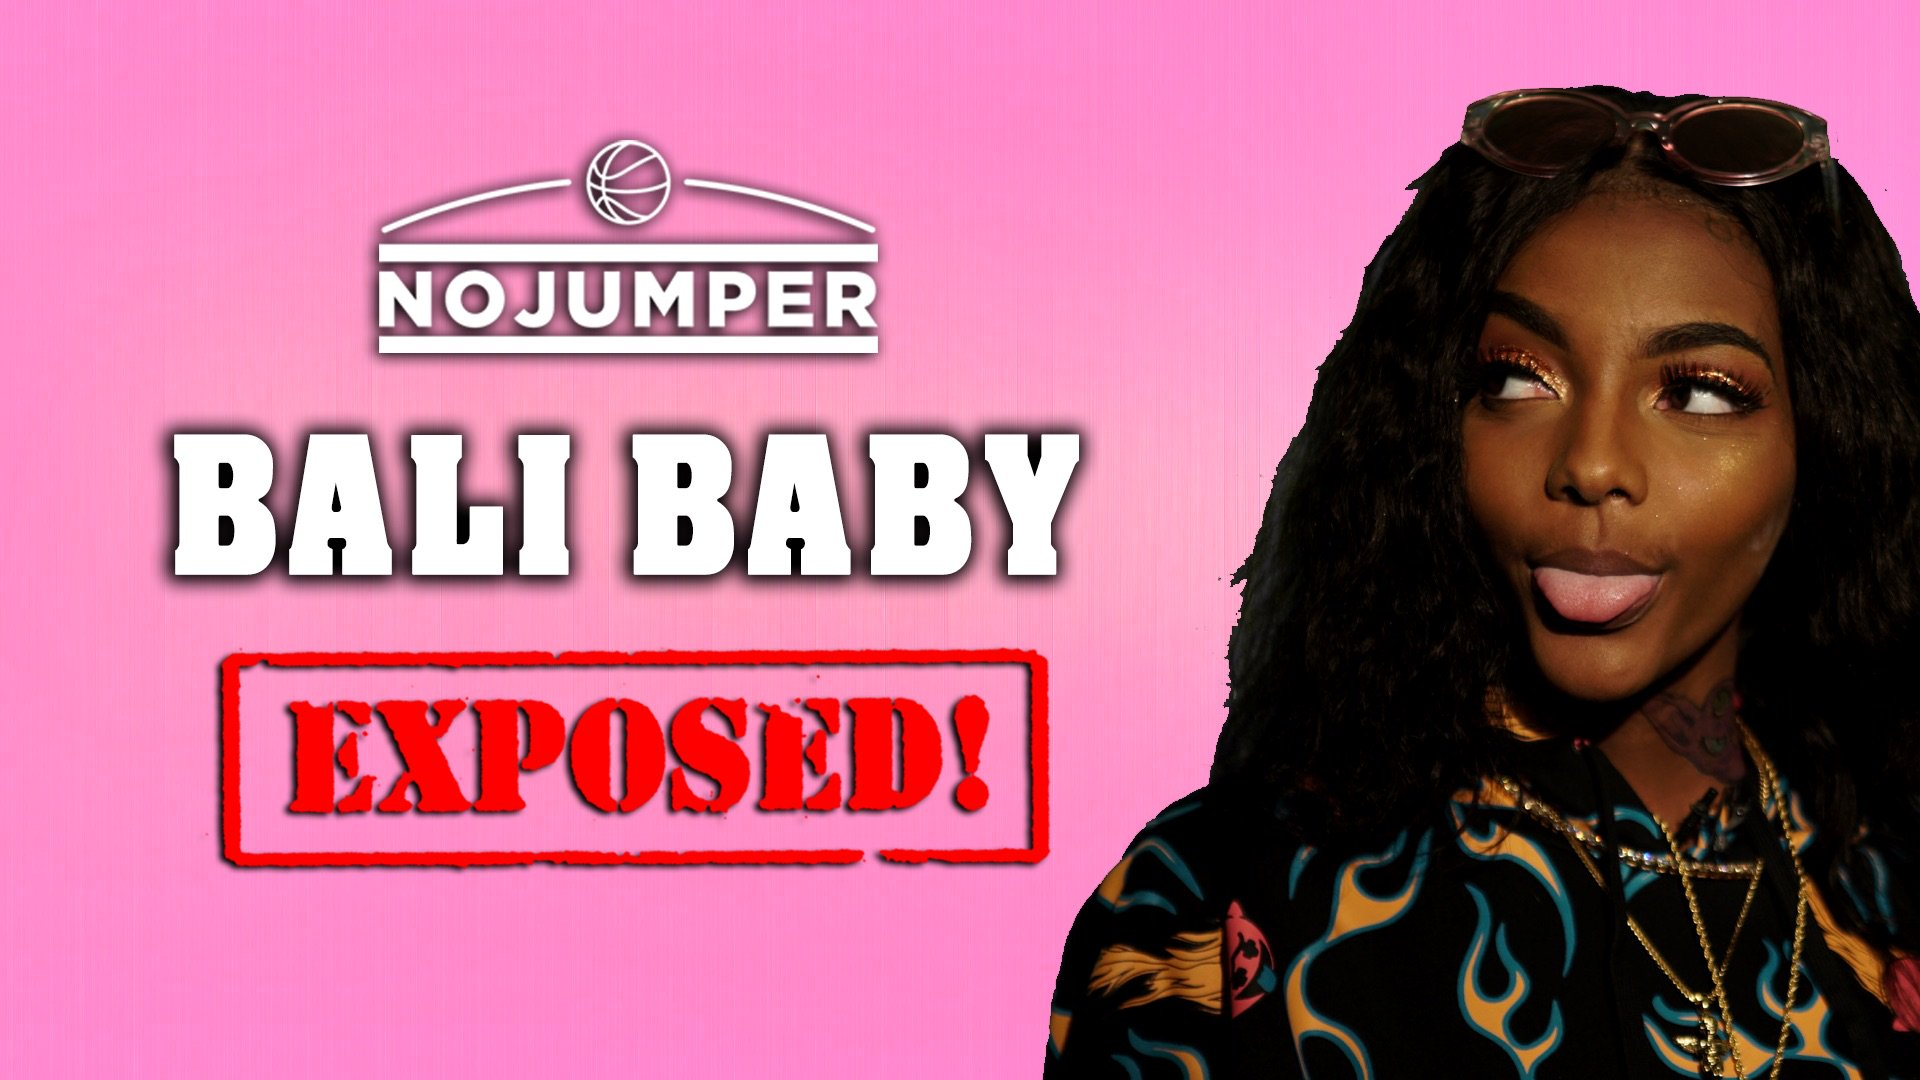 No Jumper On Twitter For The Latest In Our Exposed Series We Had A